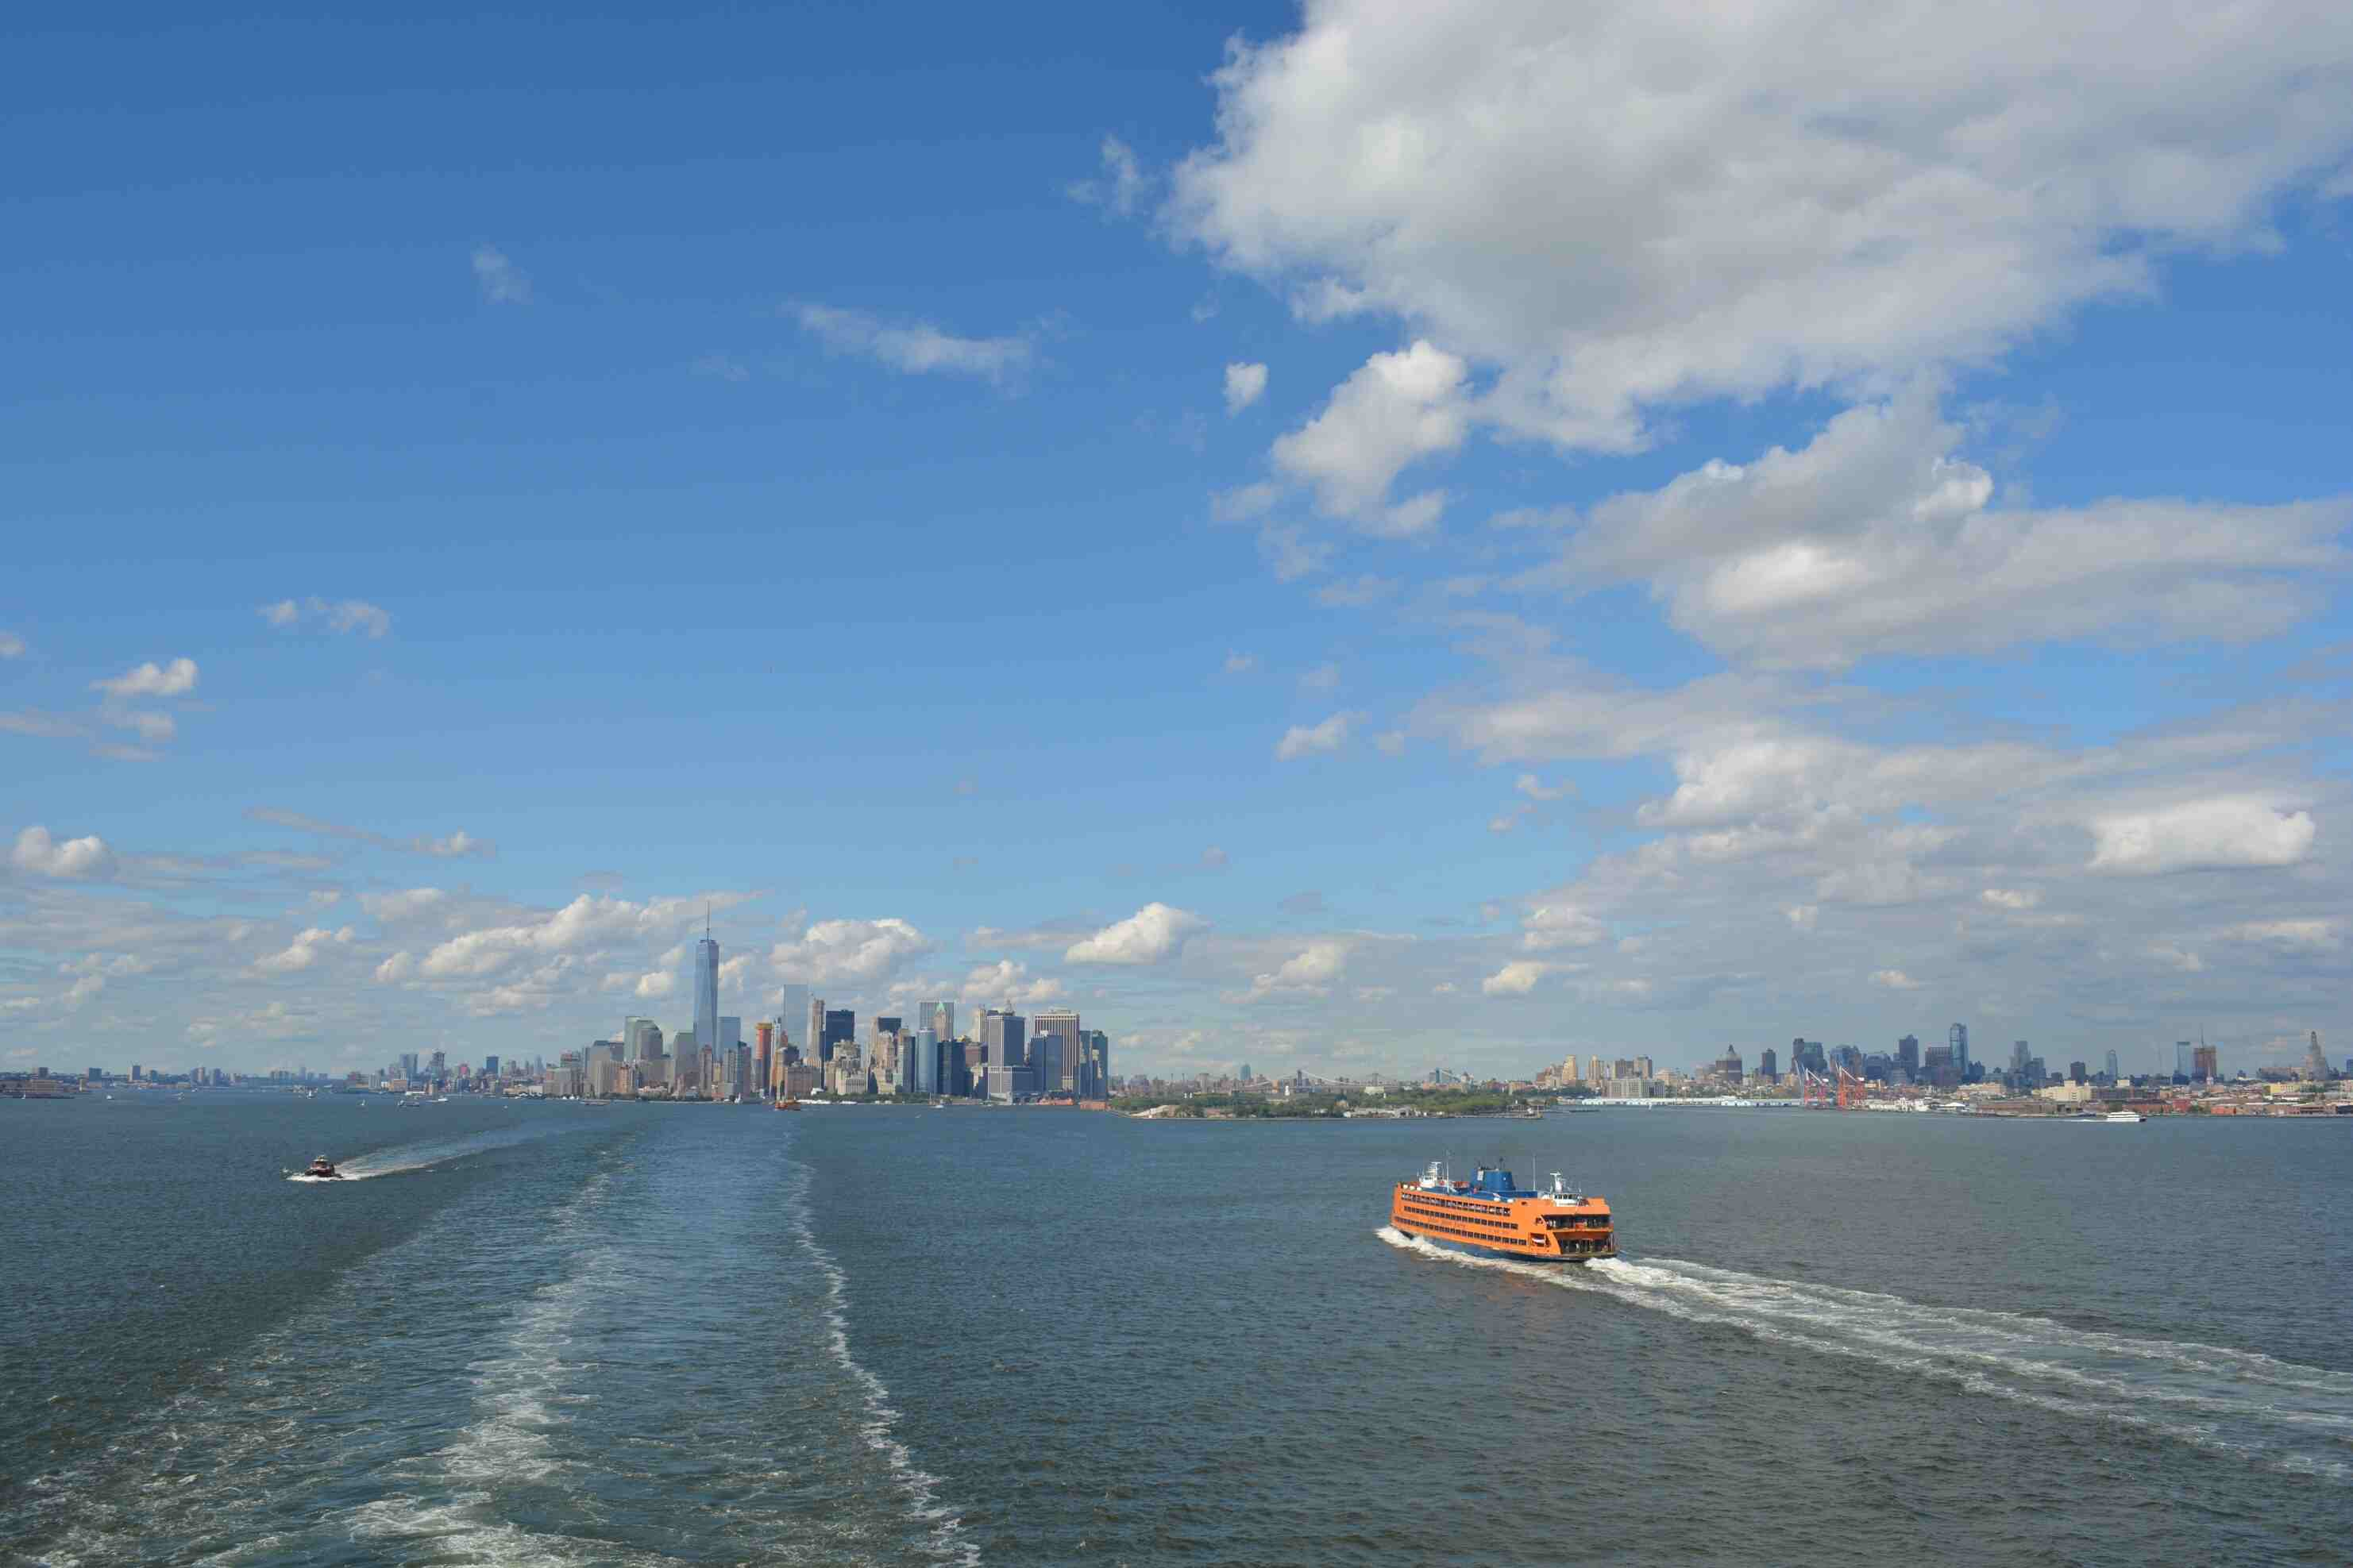 High Angle View Of Staten Island Ferry Sailing In River